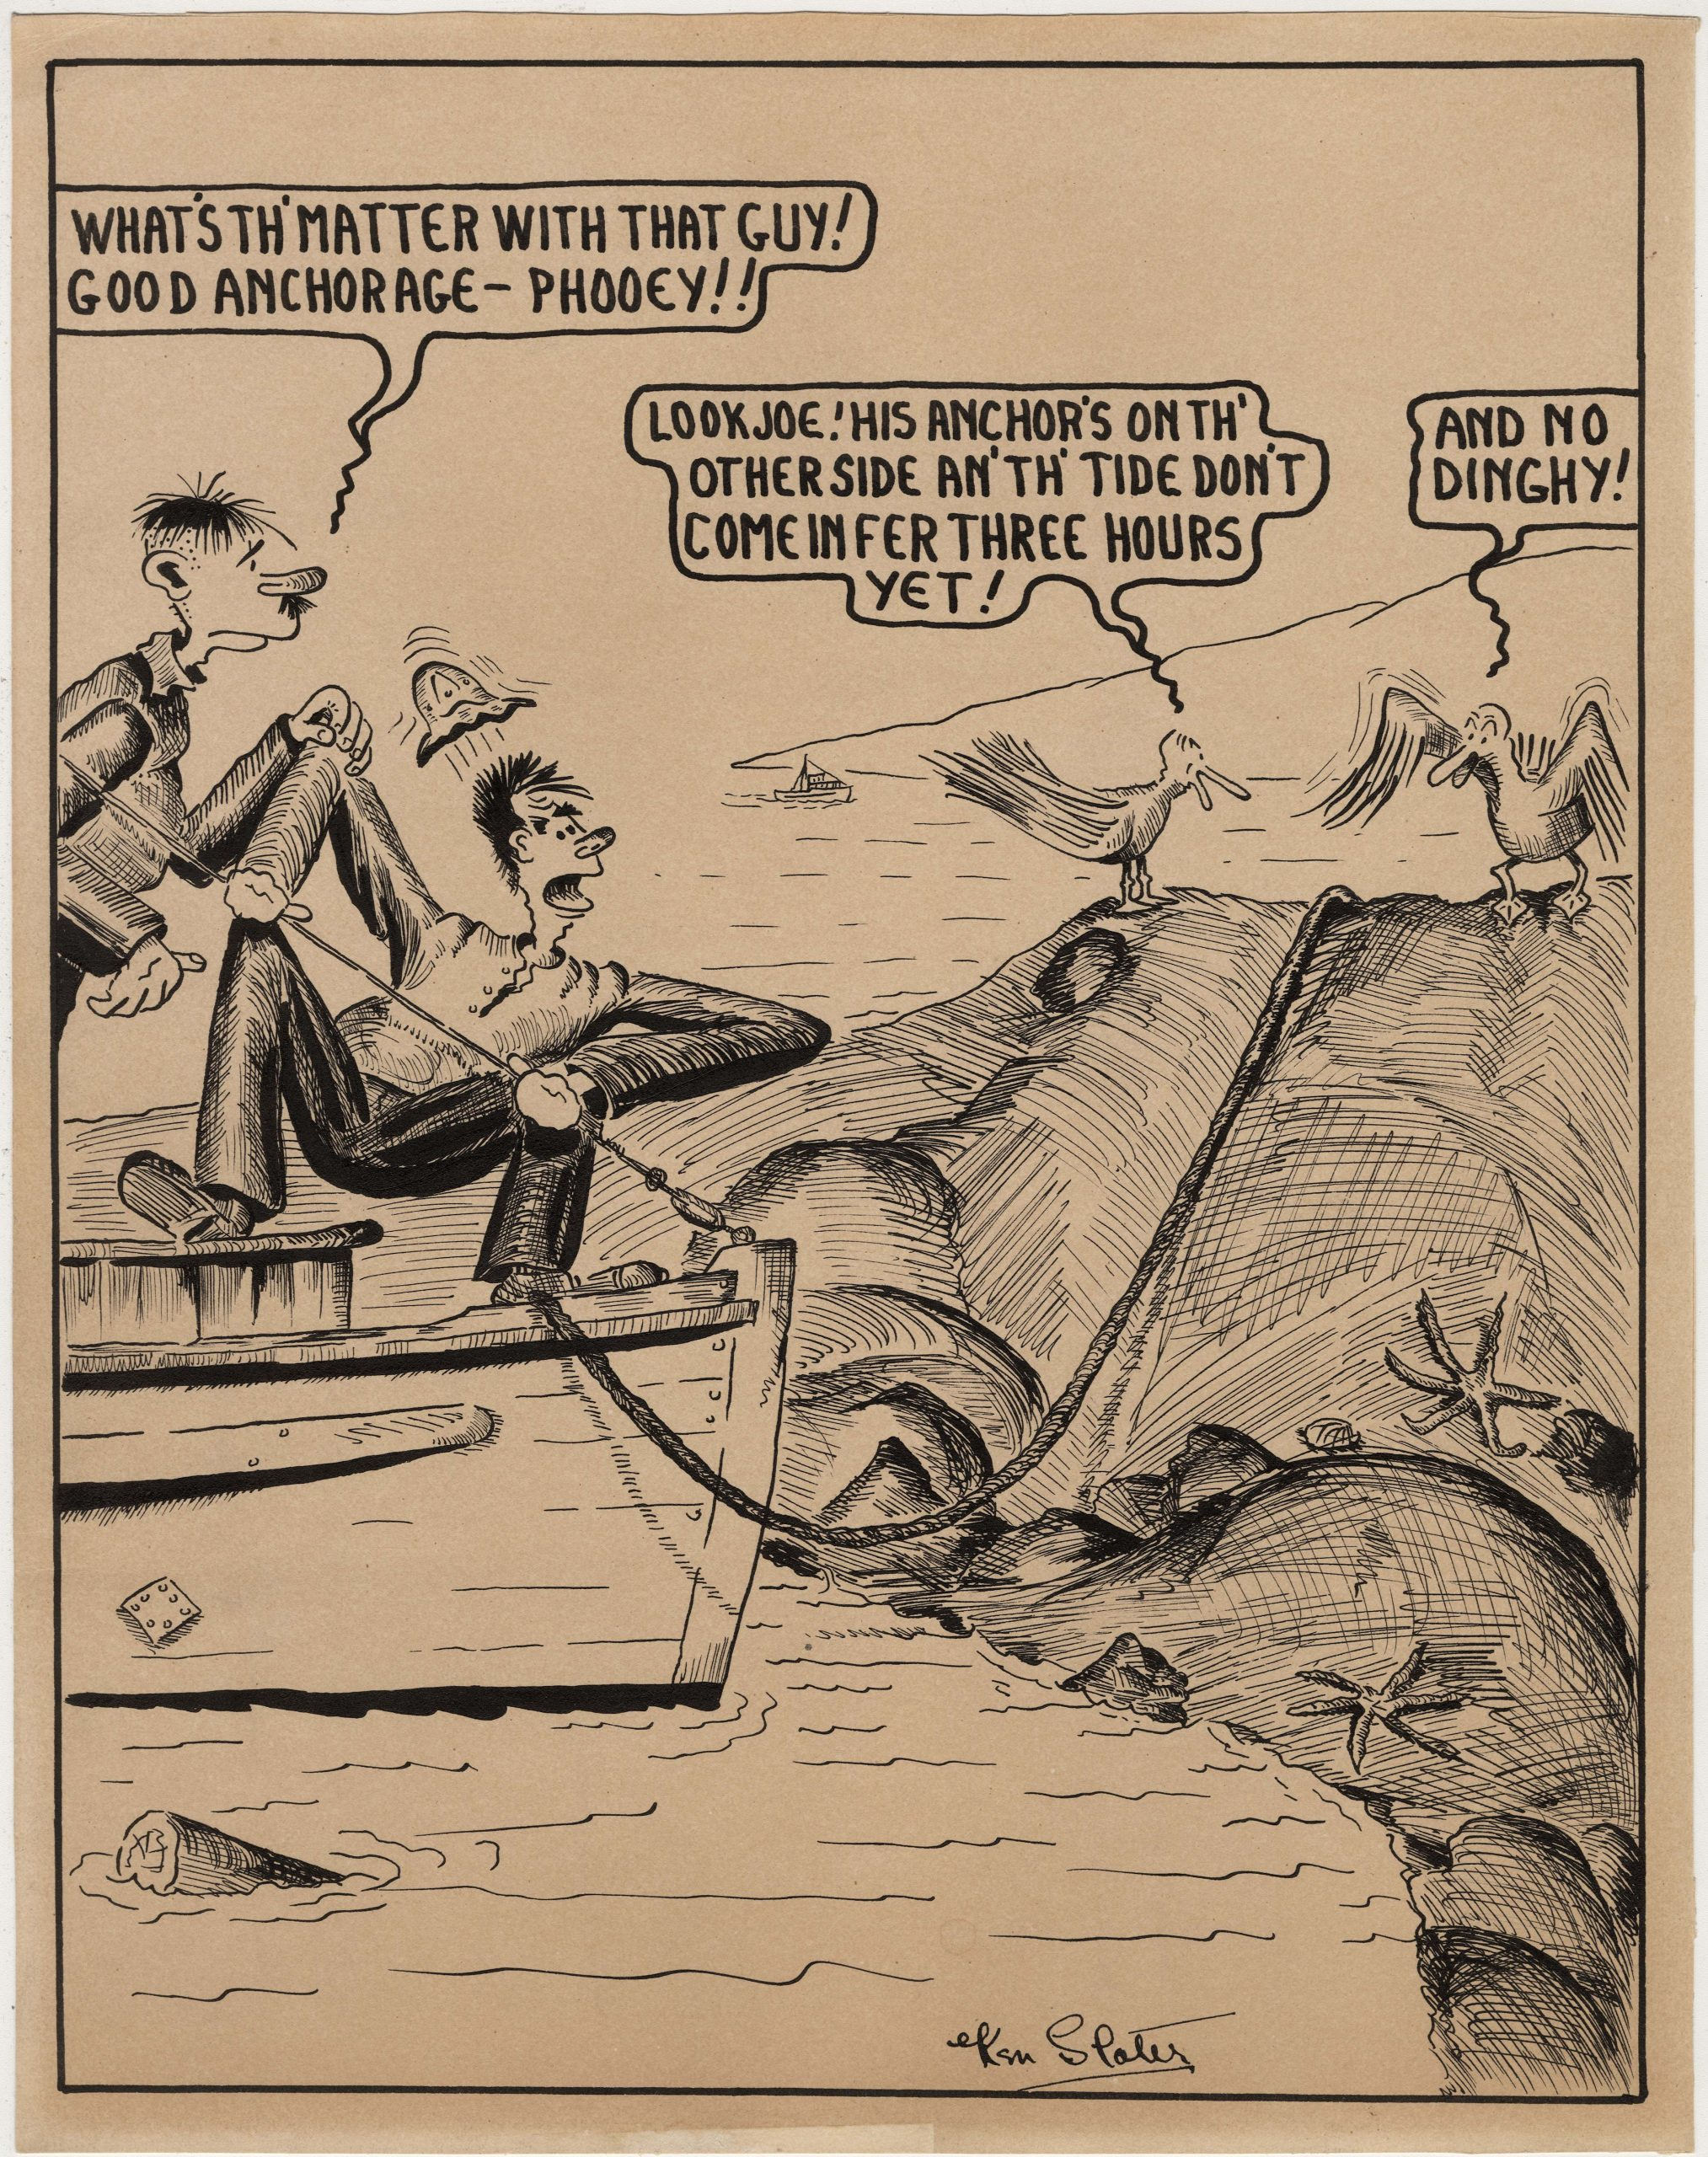 Cartoon About Good Anchorage, by Ken Slater. 1940s. AM1562-: 86-38